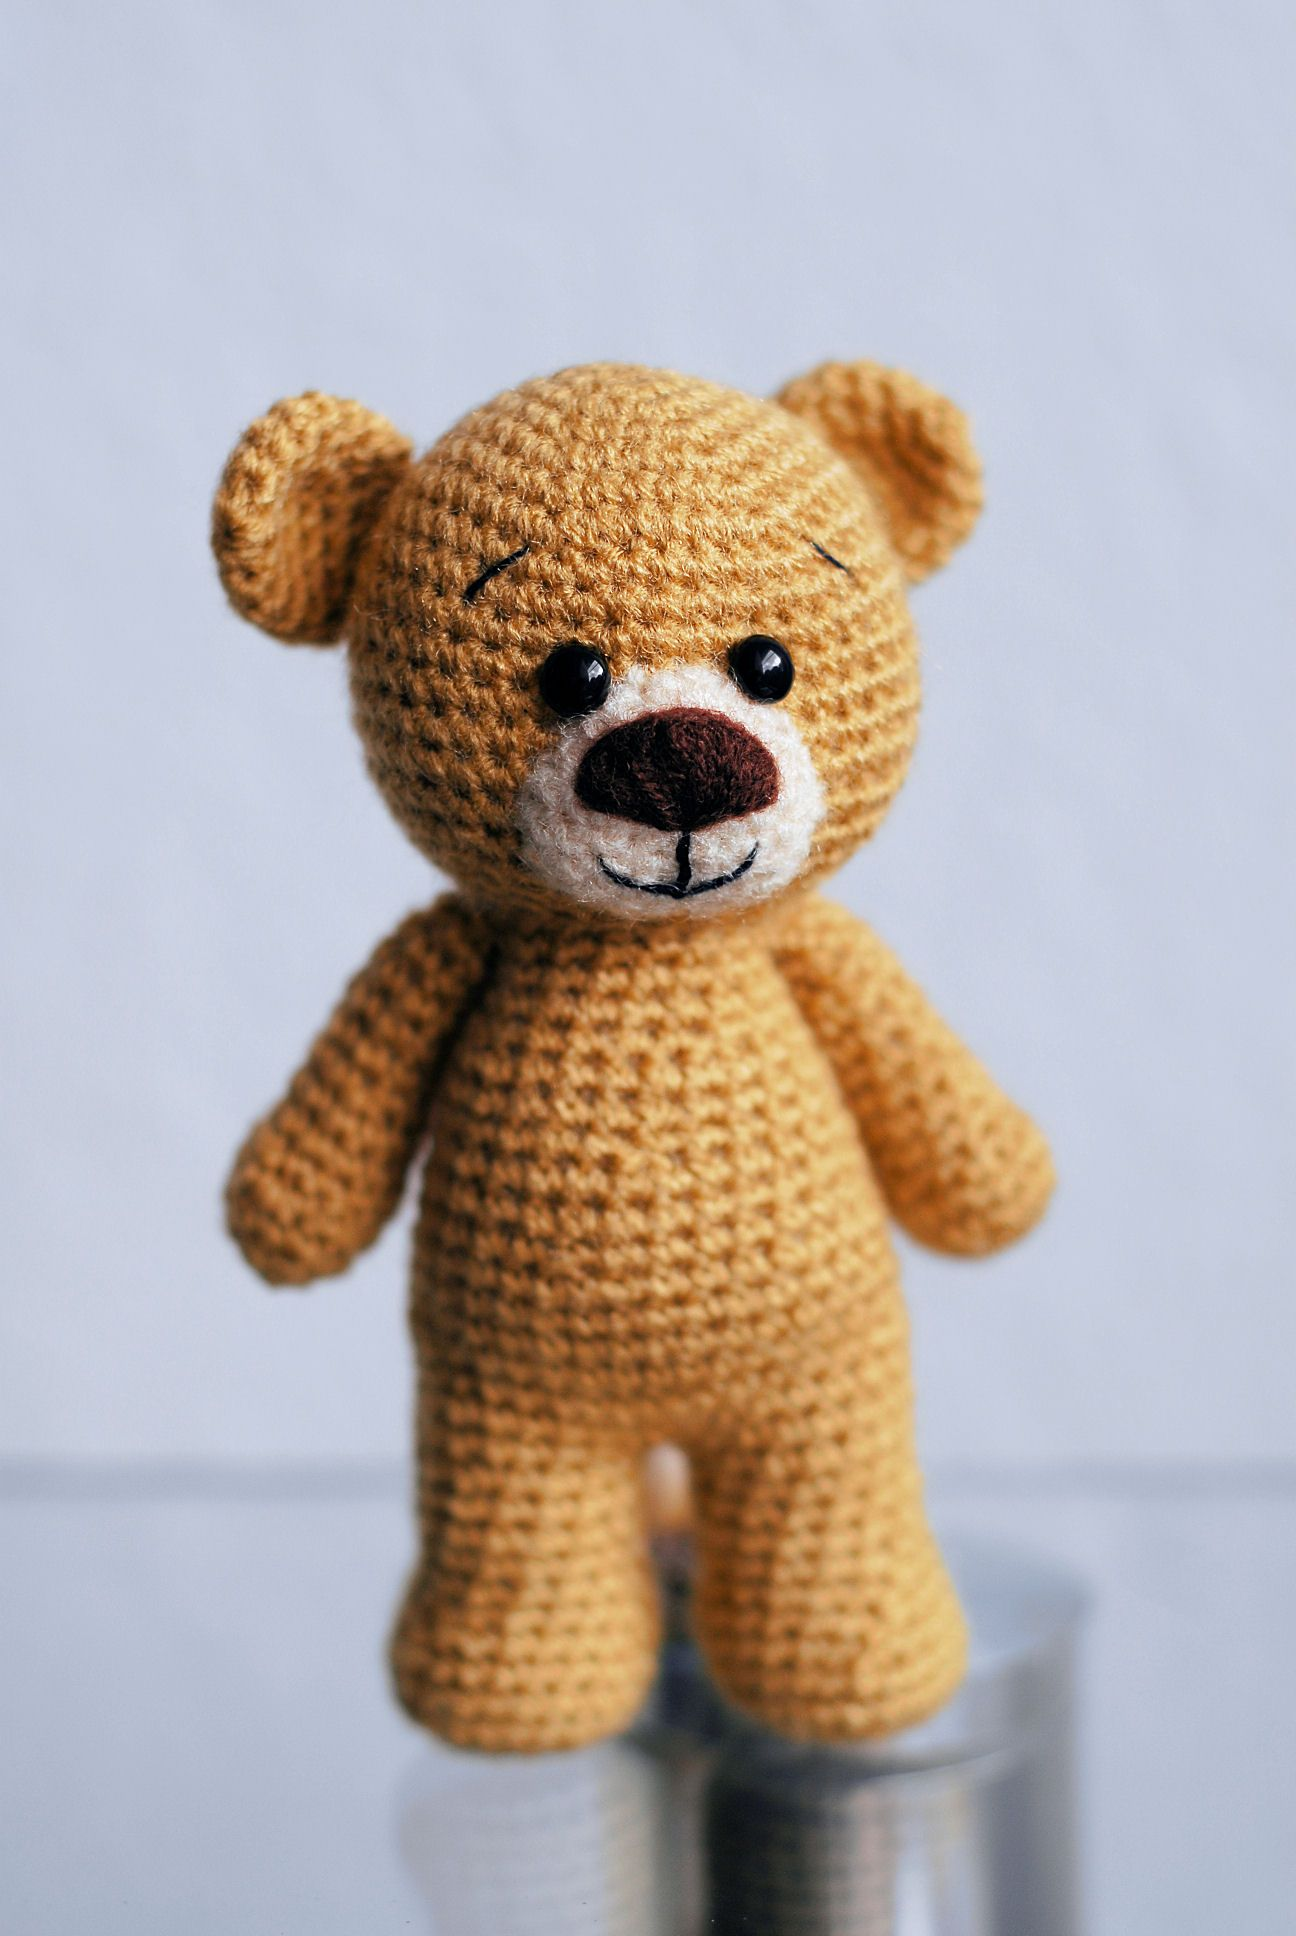 Teddy's - Jzamell Teddy's & Co. #crochetbearpatterns